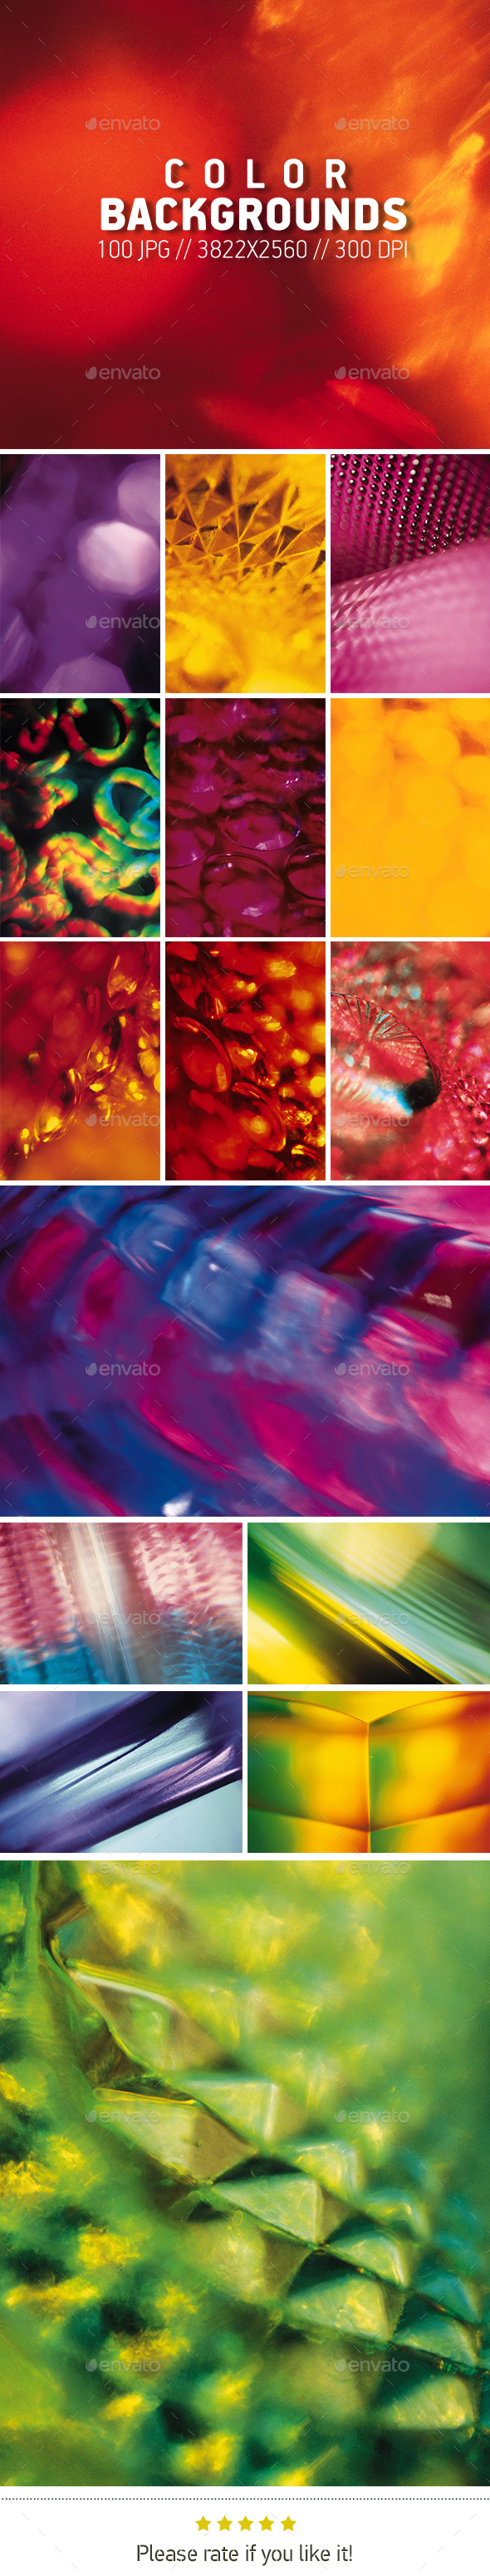 Color Backgrounds - Backgrounds Graphics